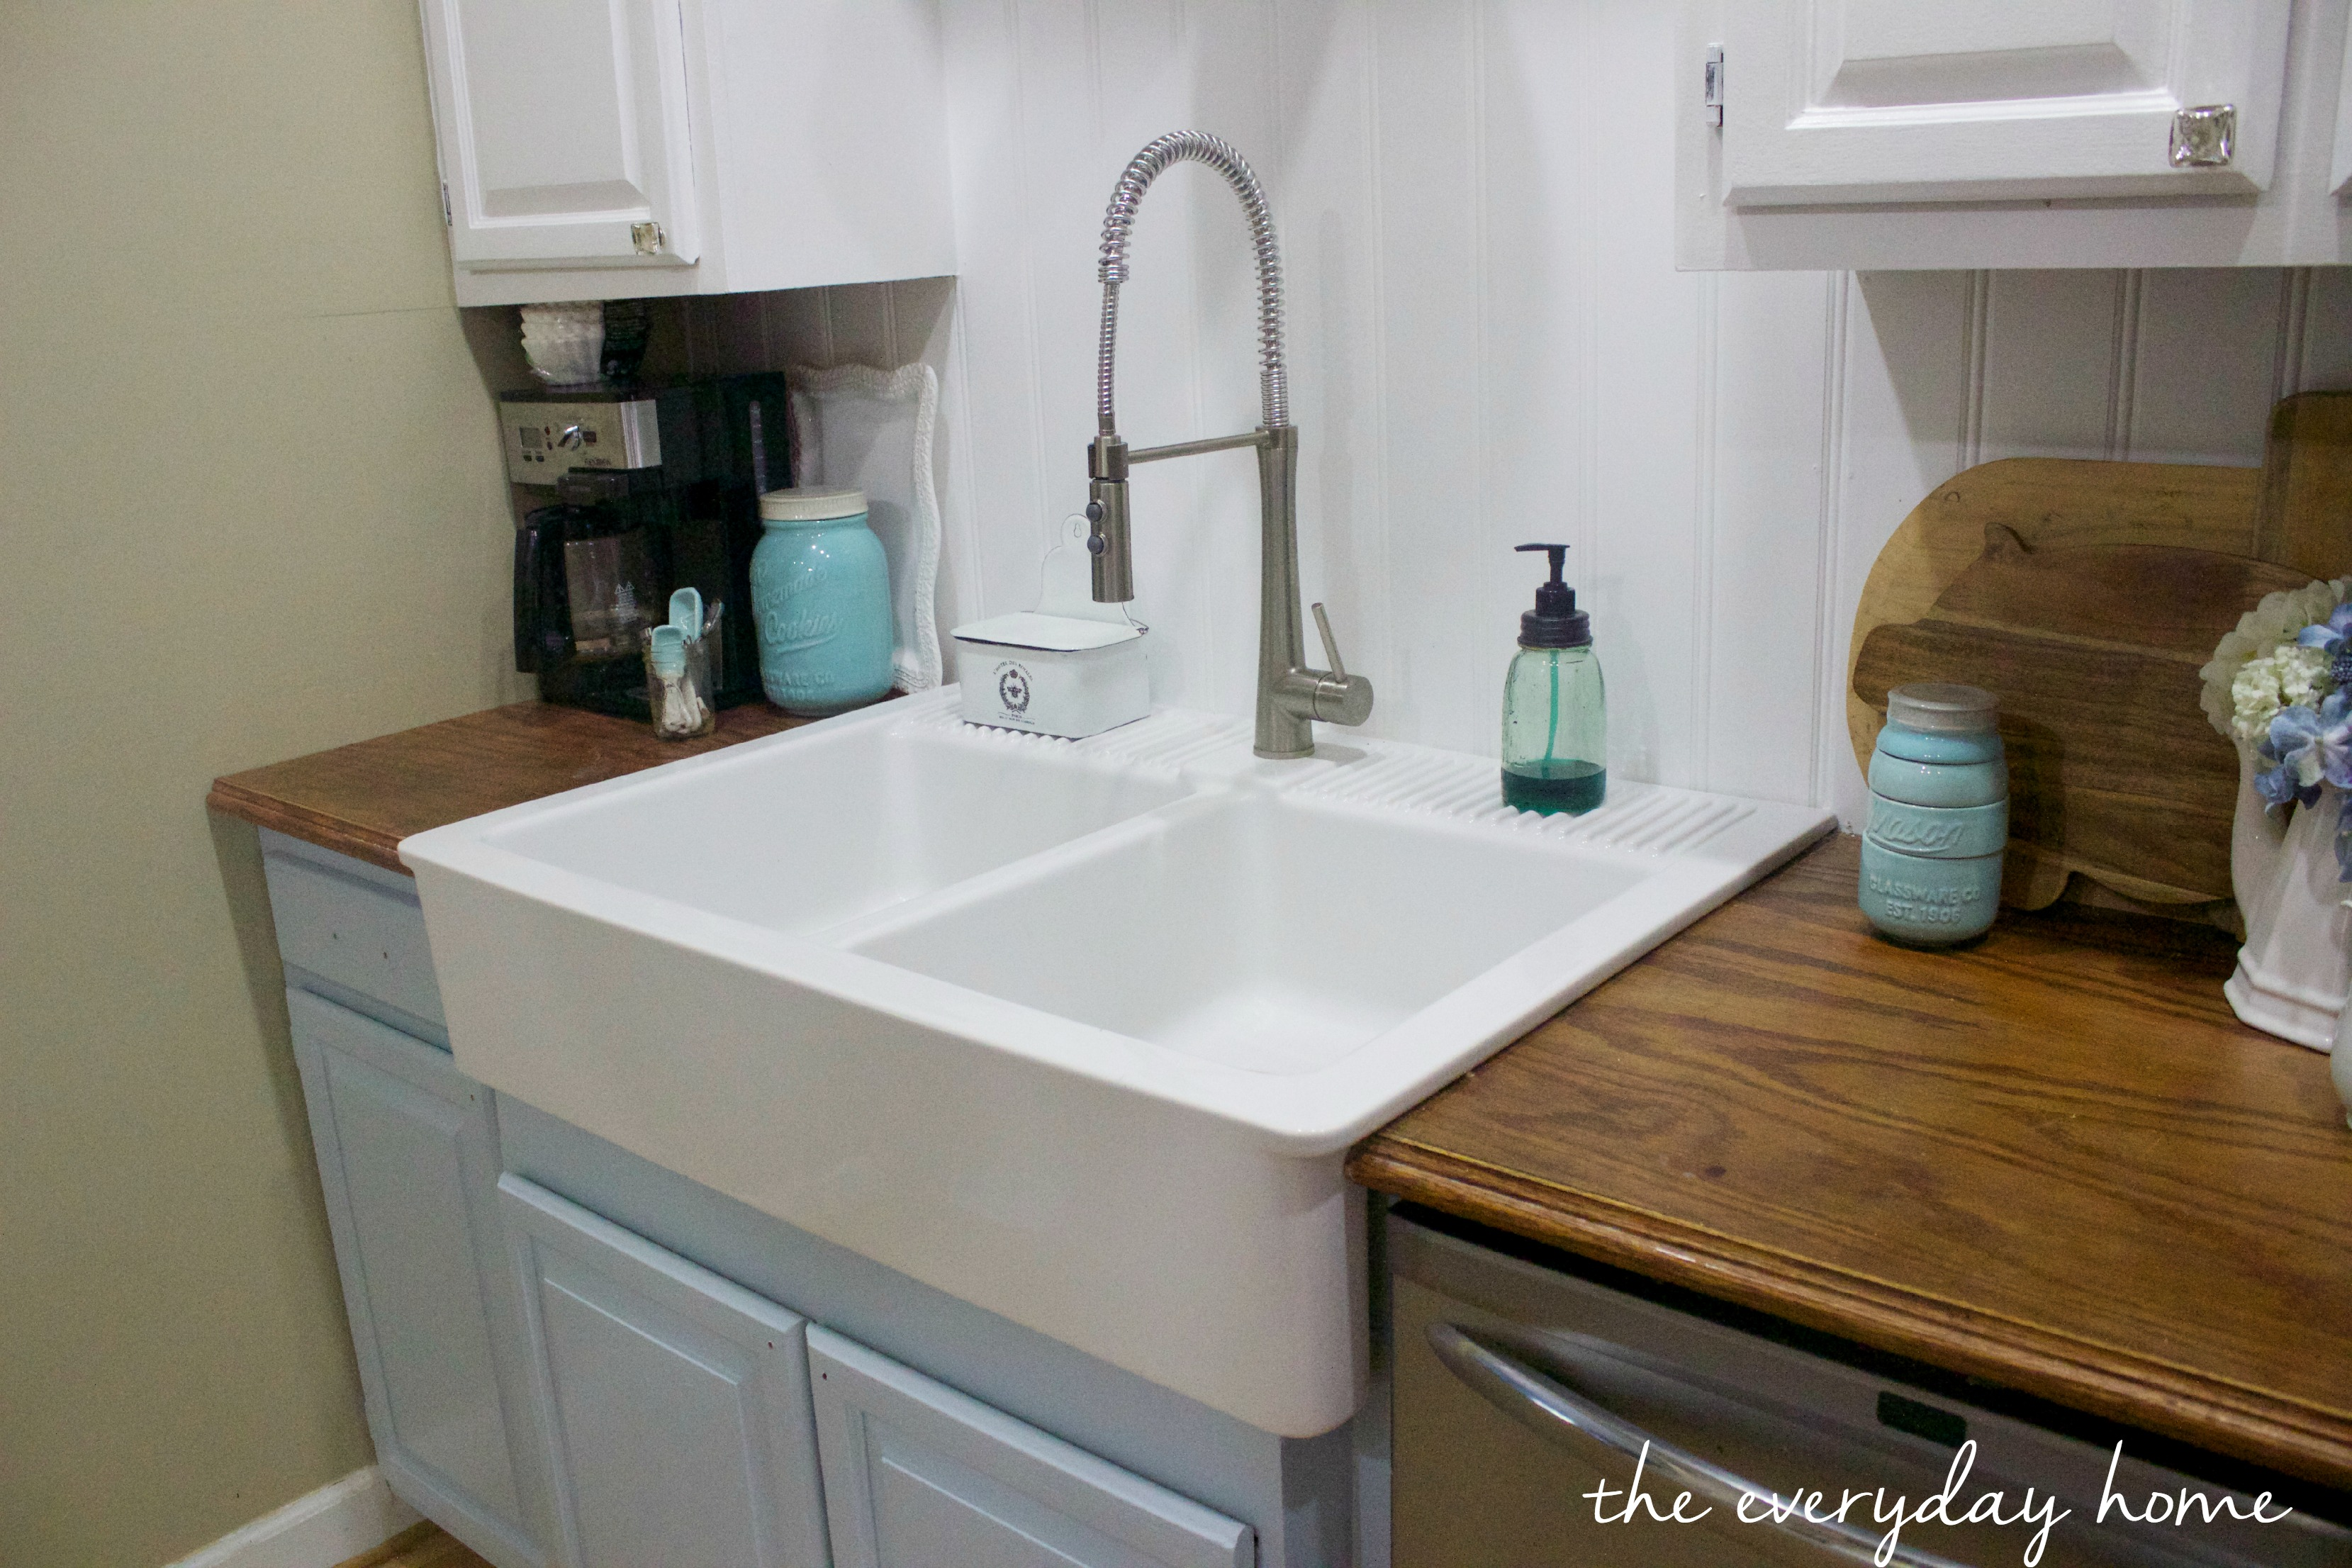 ikea farmhouse sink the everyday home wwweverydayhomeblogcom - Ikea Kitchen Sink